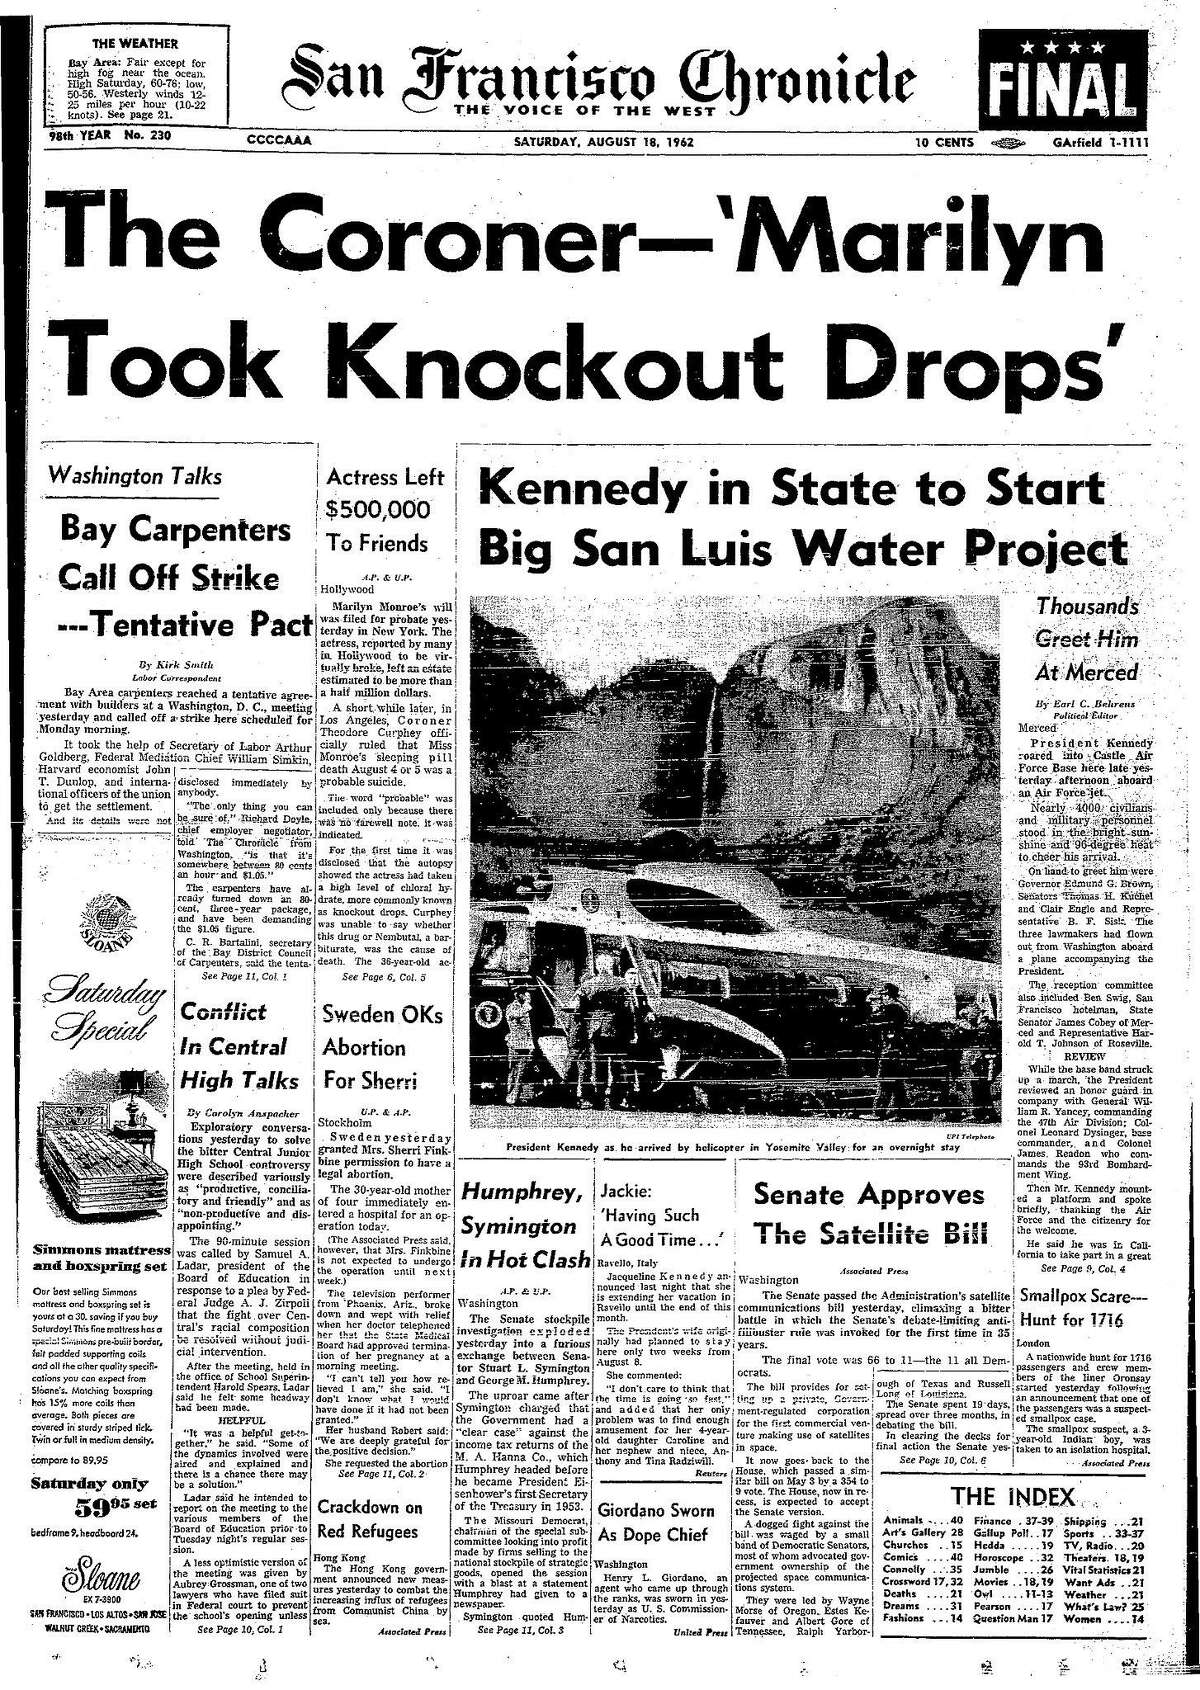 Historic Chronicle Front Page August 18, 1962 President John F. Kennedy visits Yosemite and Coroner reports on Marilyn Monroe's death, Chron365, Chroncover